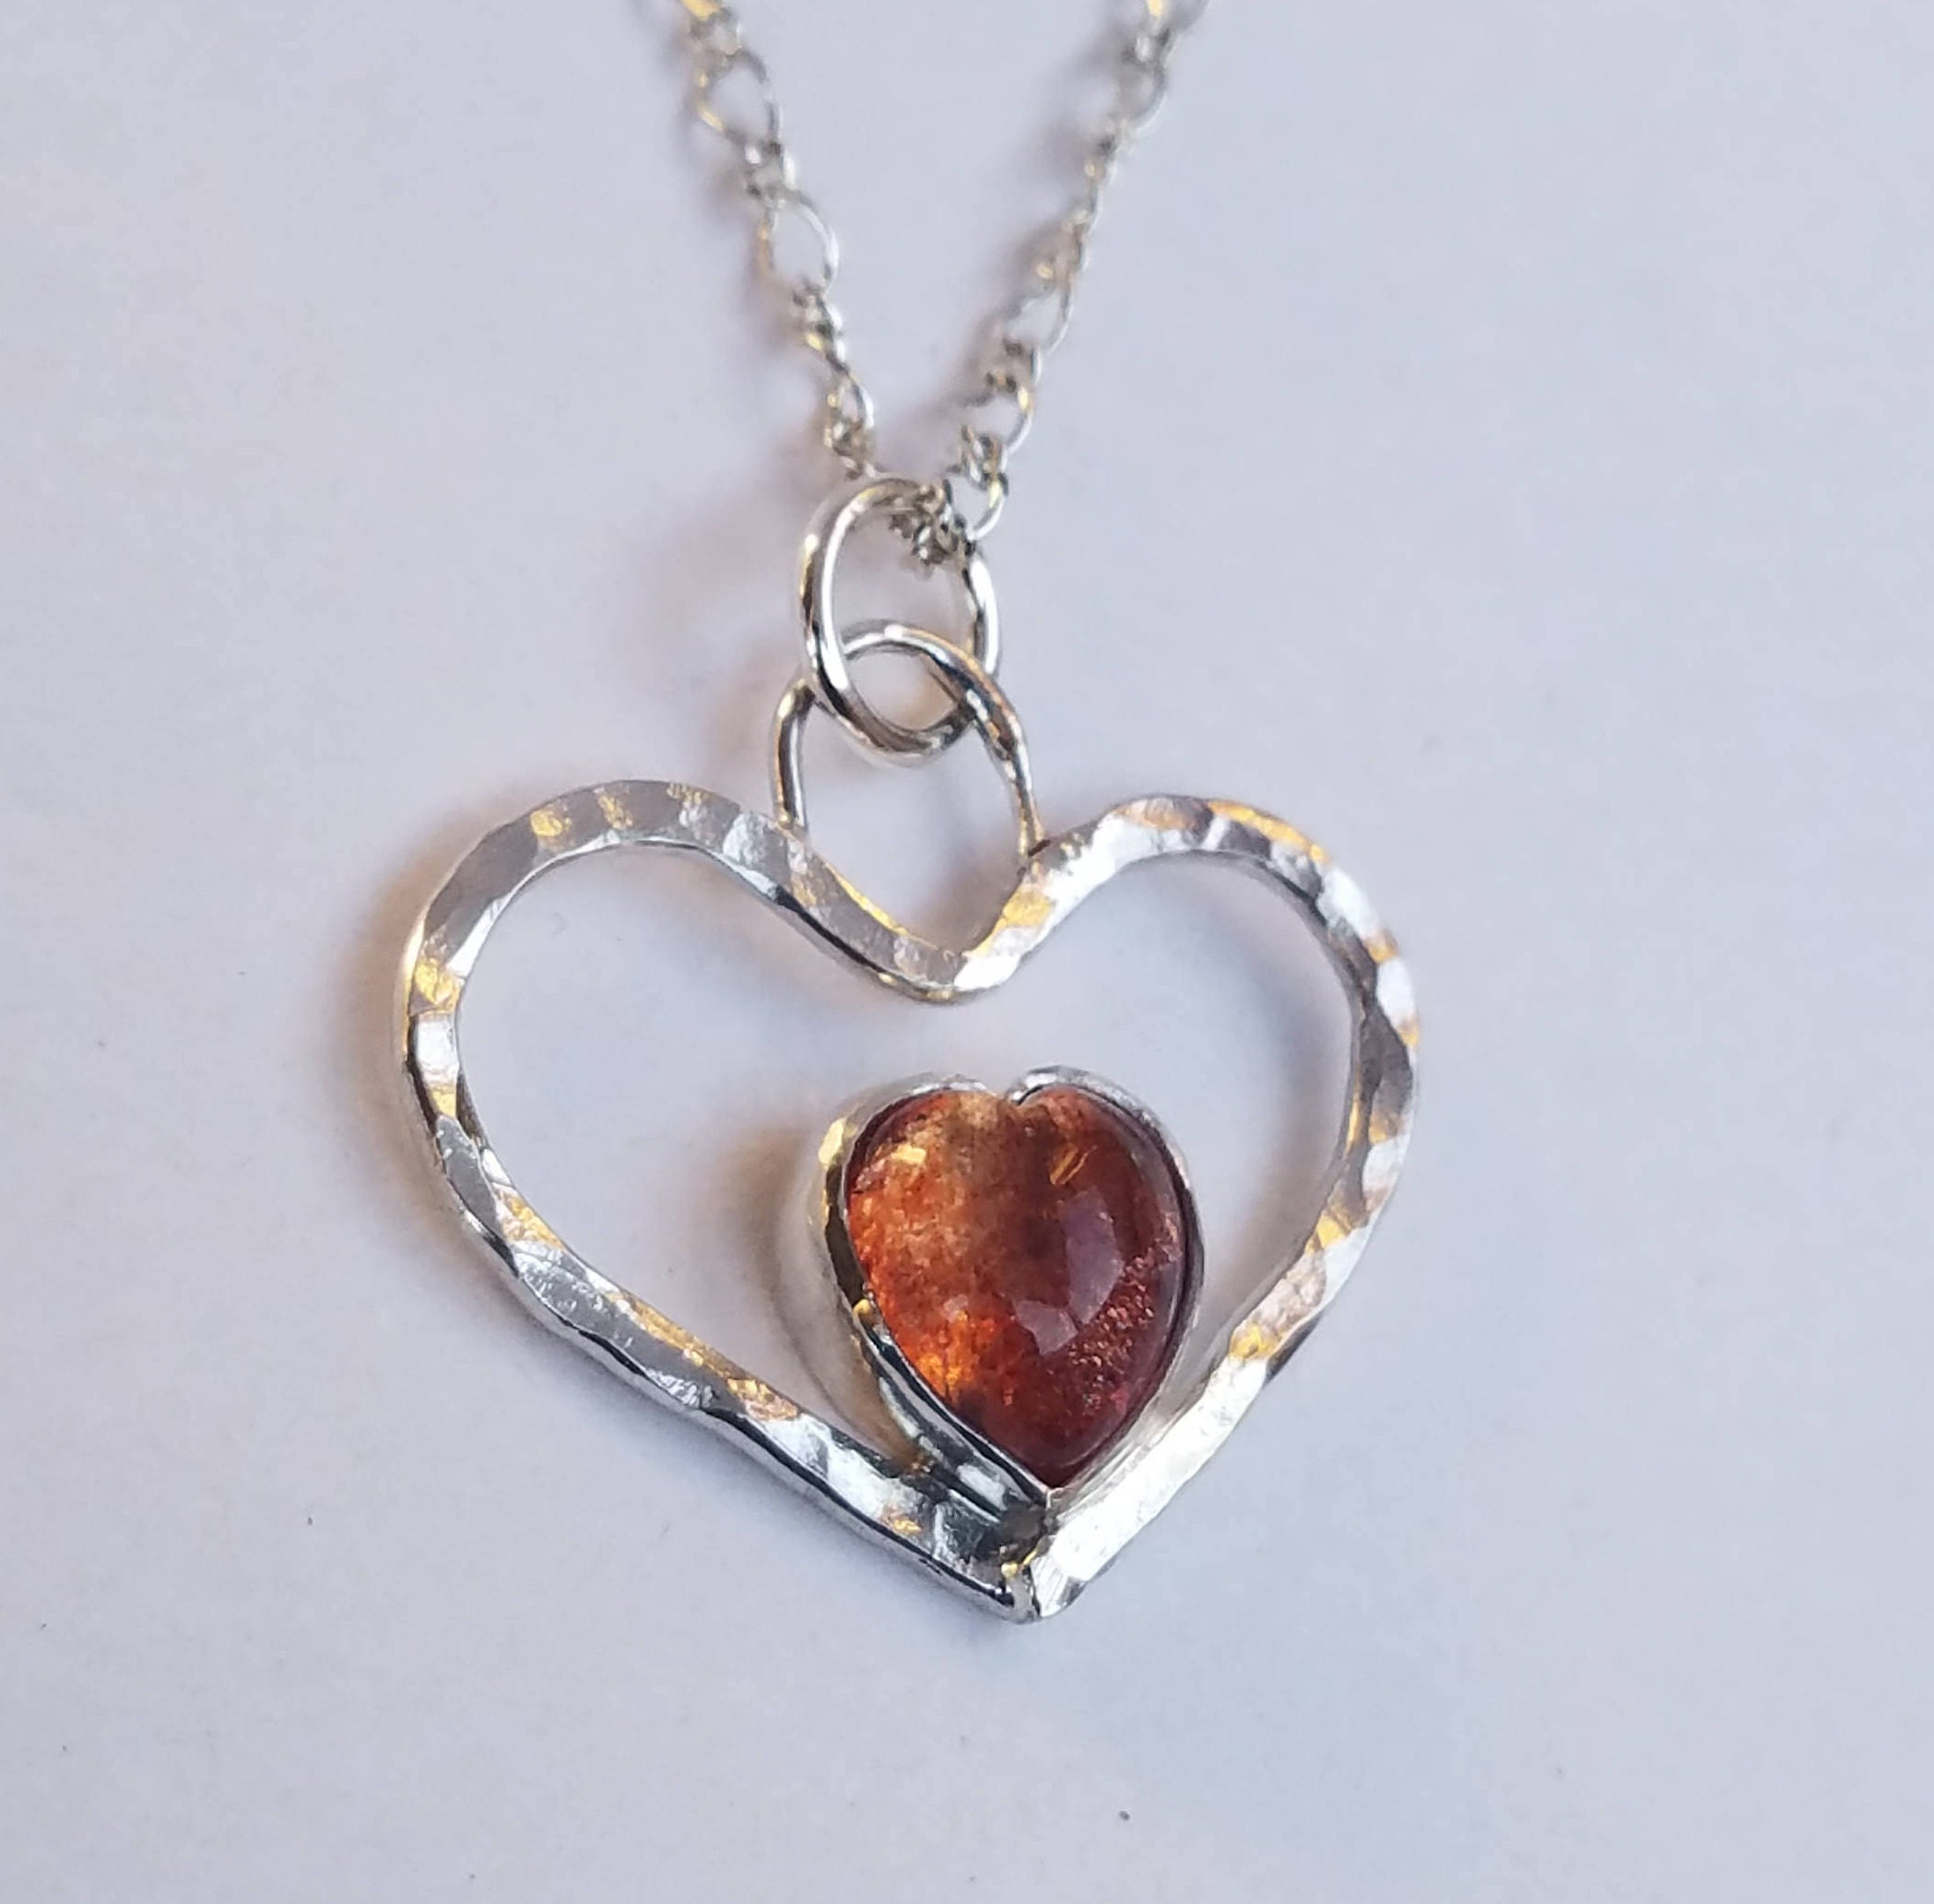 necklace by sunstone gemstone sterling pendant fullxfull listing silver sold gypsydreamerdesigns natural il